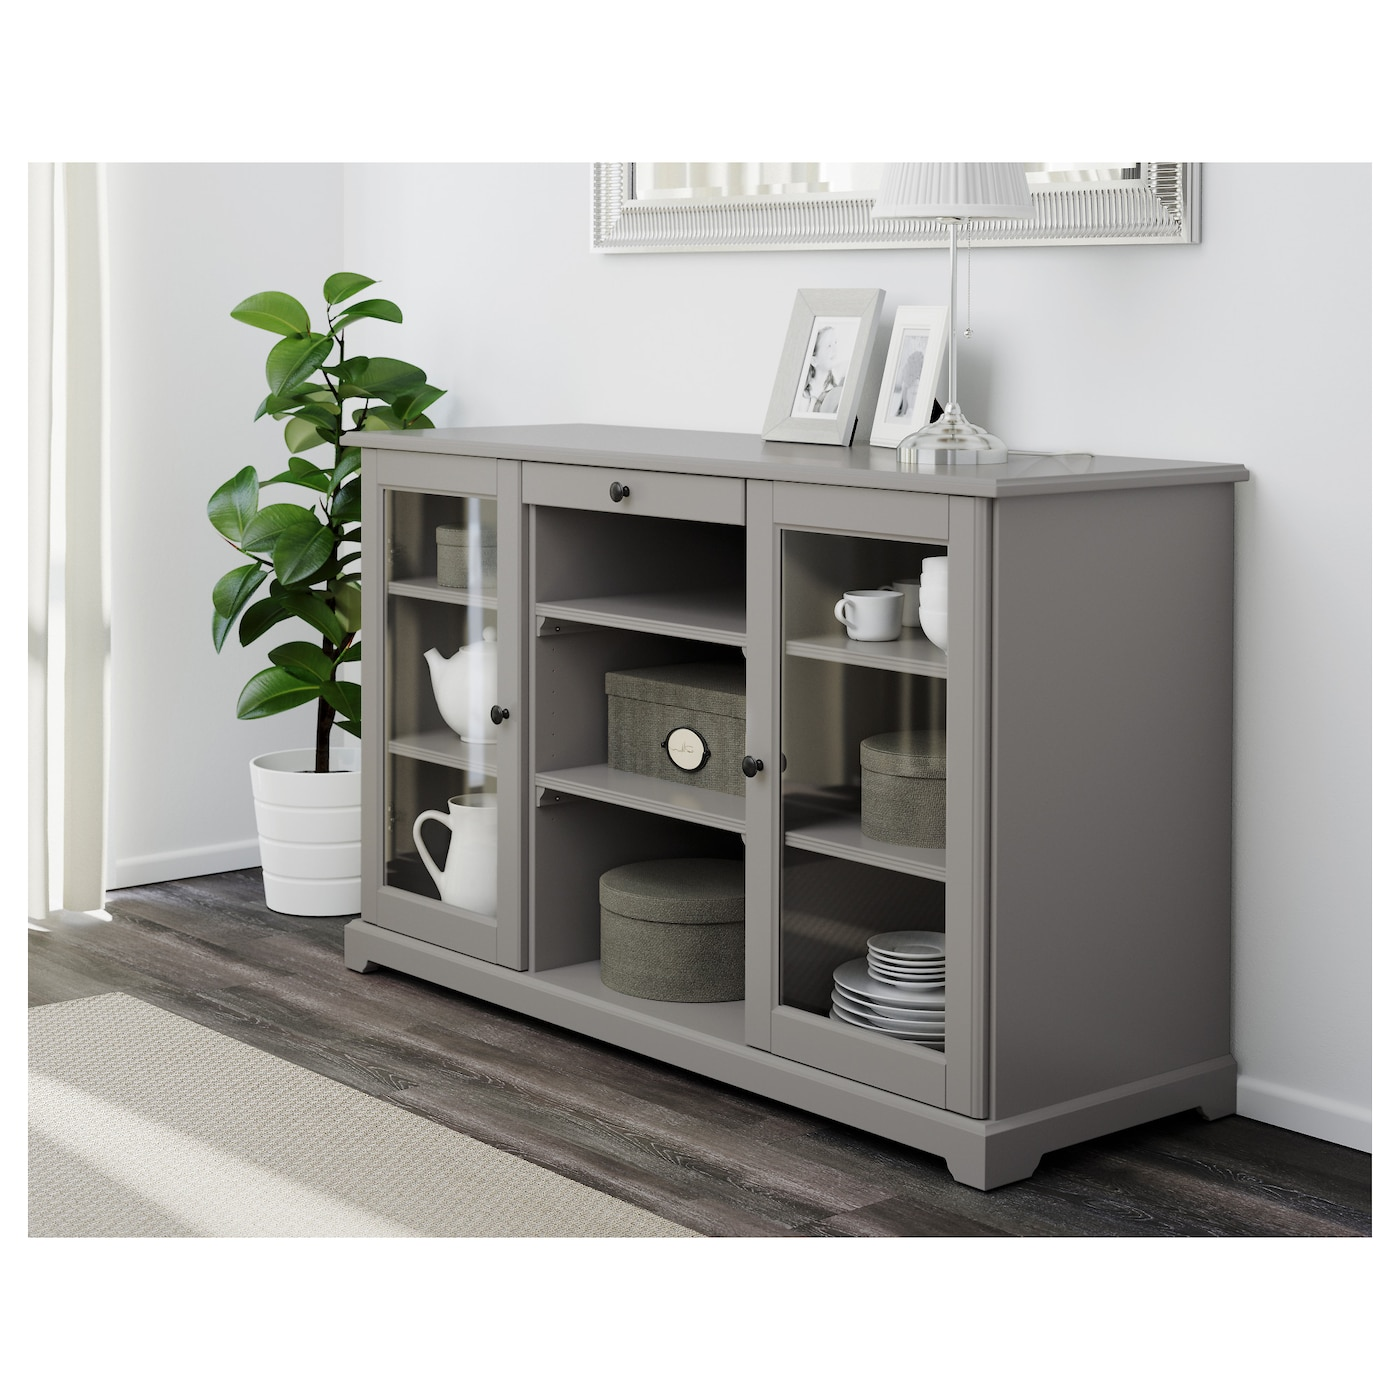 liatorp sideboard grey 145 x 87 cm ikea. Black Bedroom Furniture Sets. Home Design Ideas